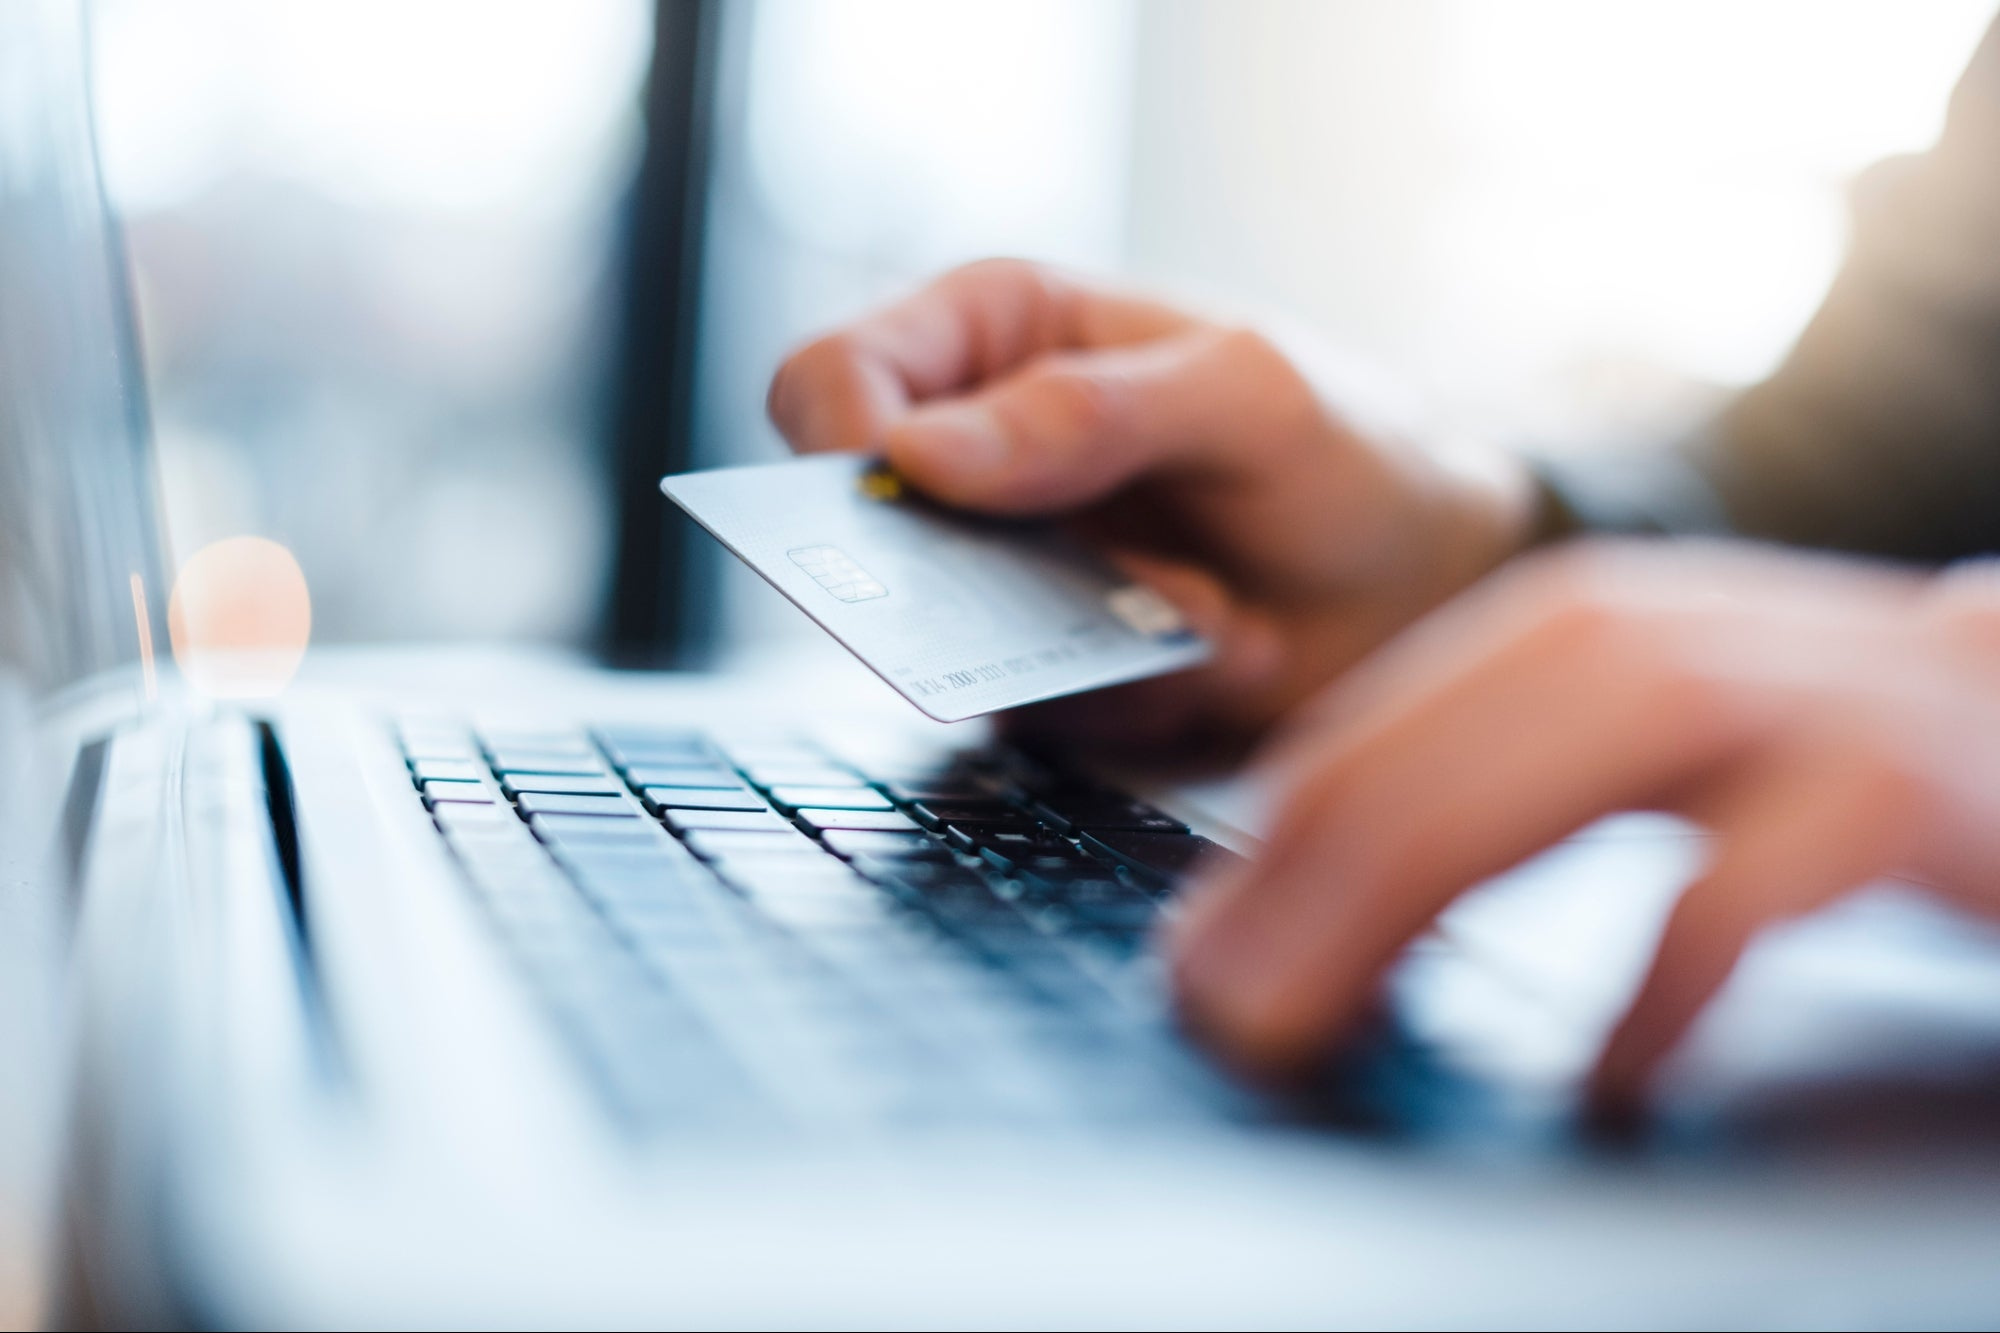 3 Simple Ways to Boost E-Commerce Sales